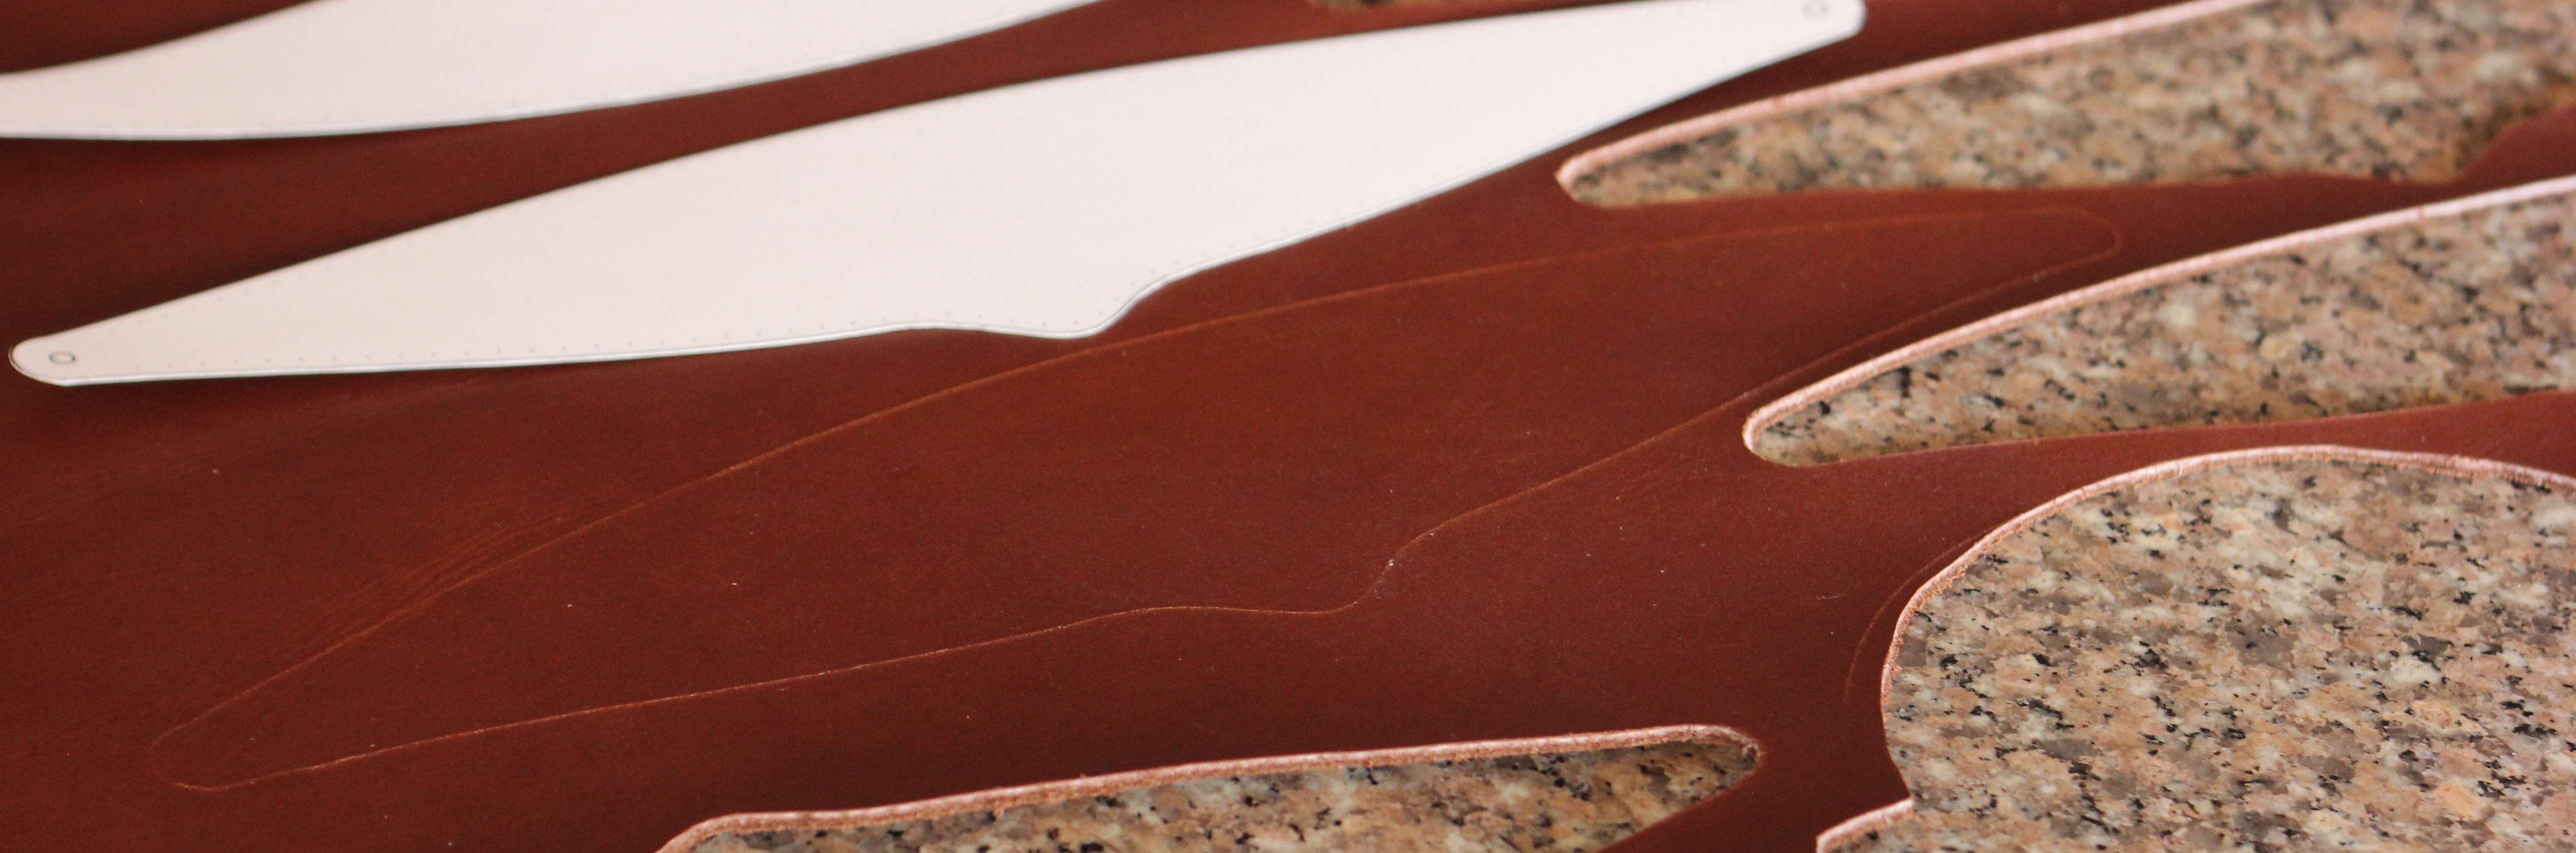 Picture of Cutting Leather and Lining